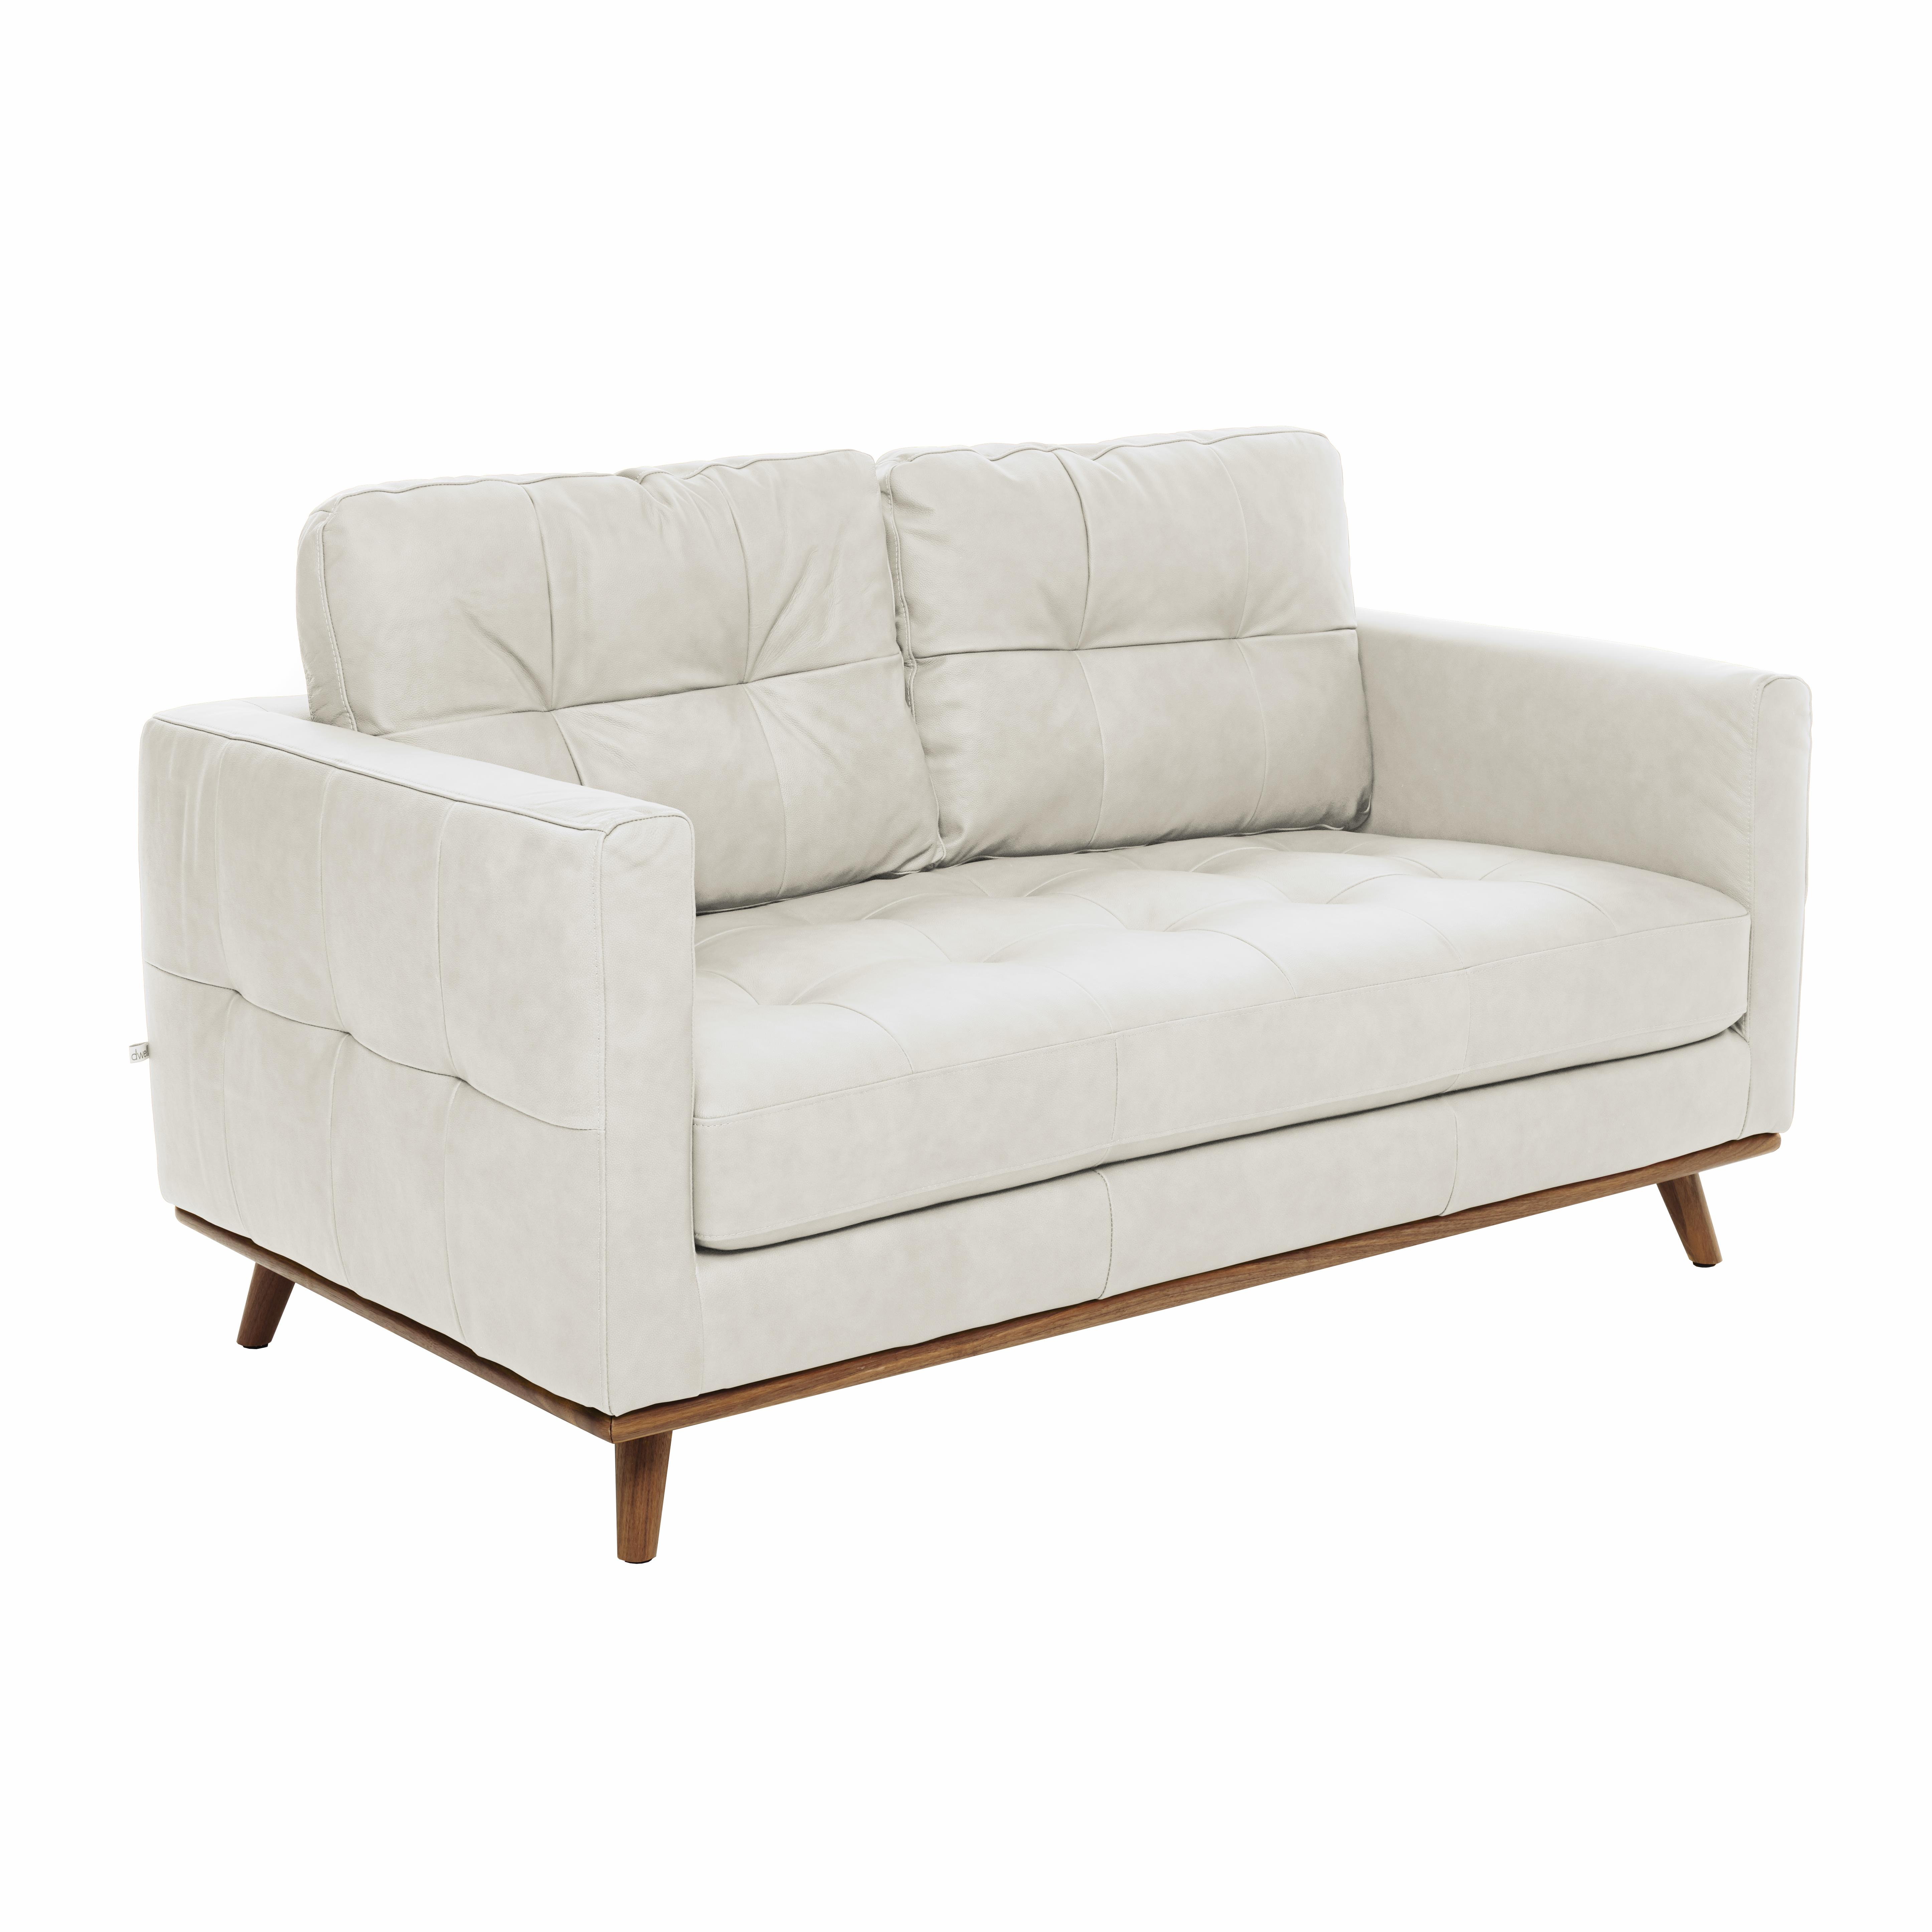 Albi two seater sofa mollis leather chalk white